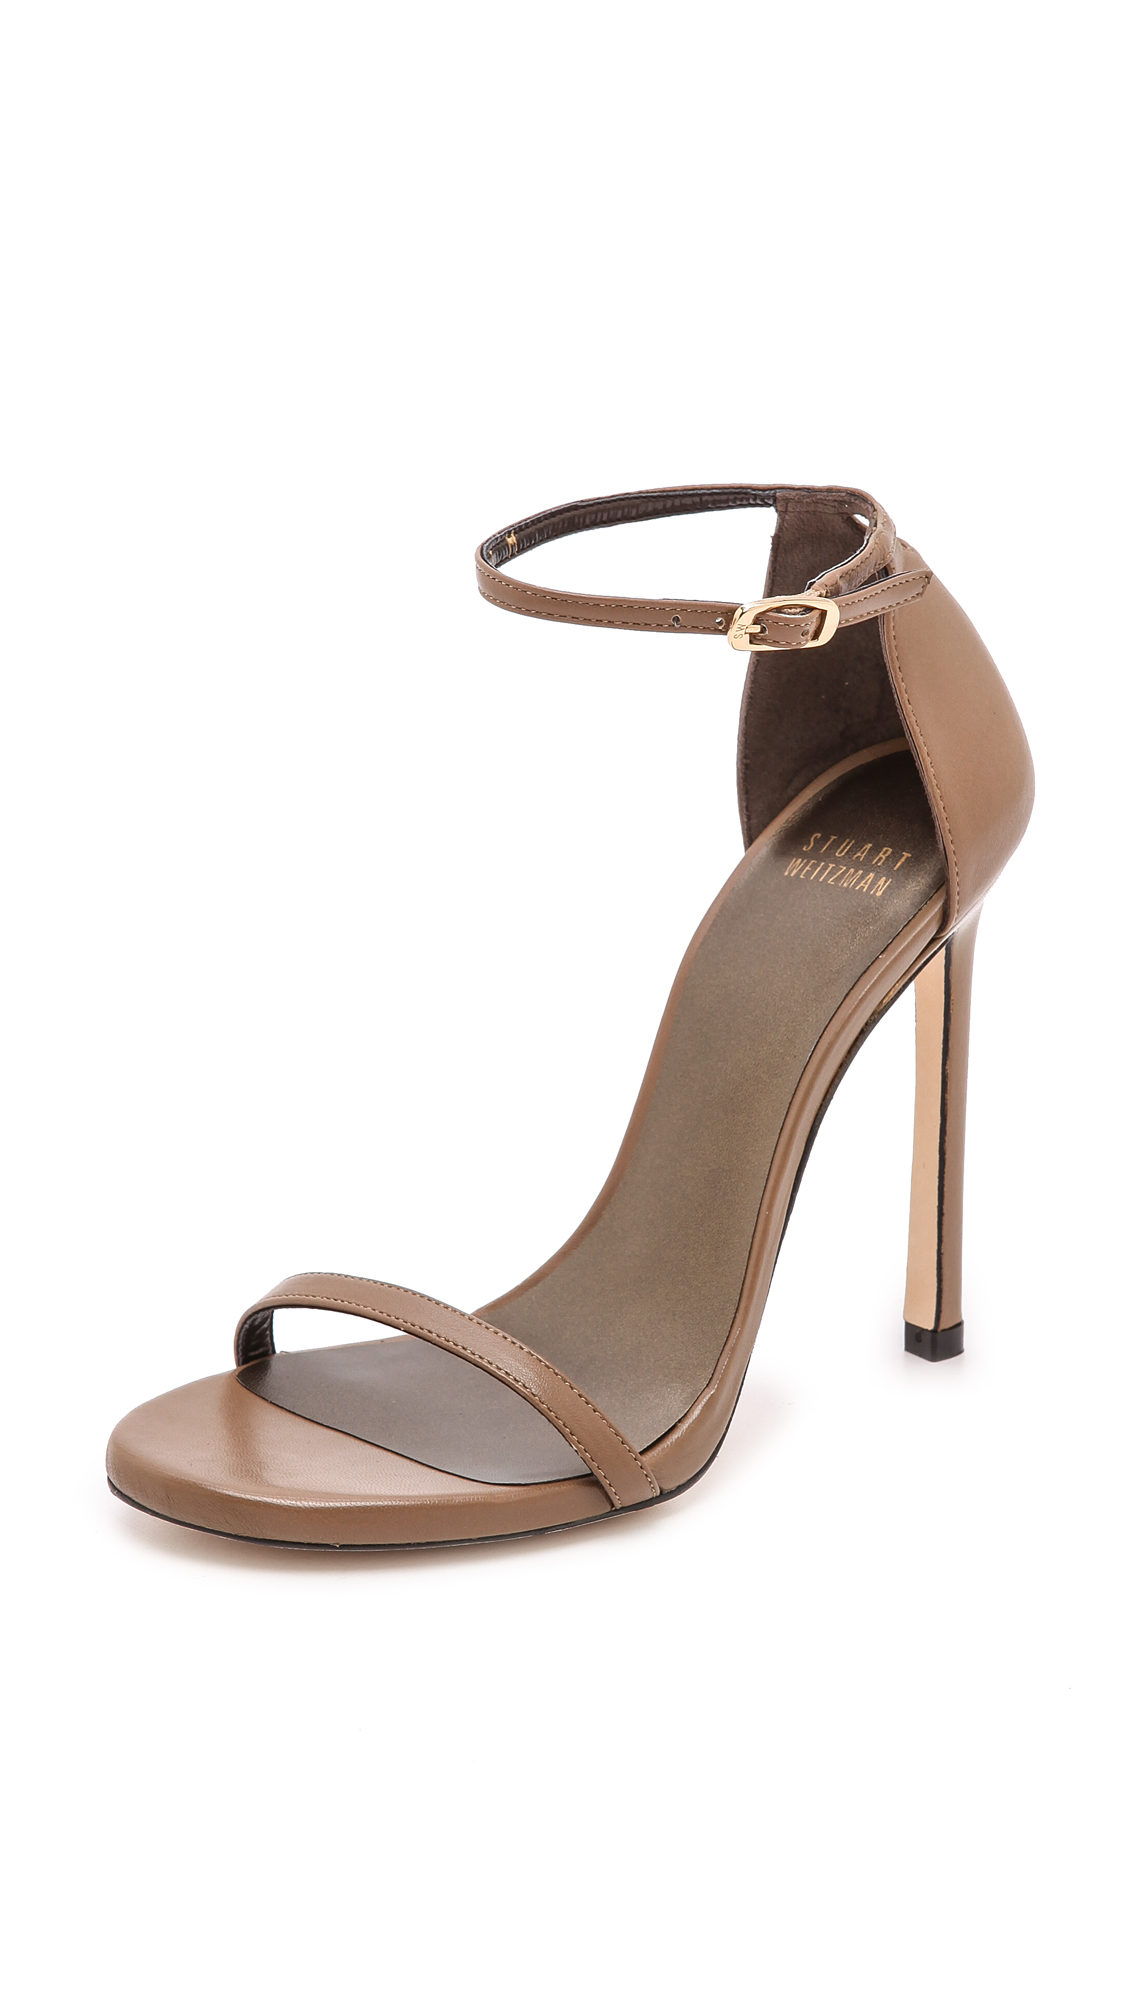 Stuart Weitzman Nudist 110mm Sandals - Truffle